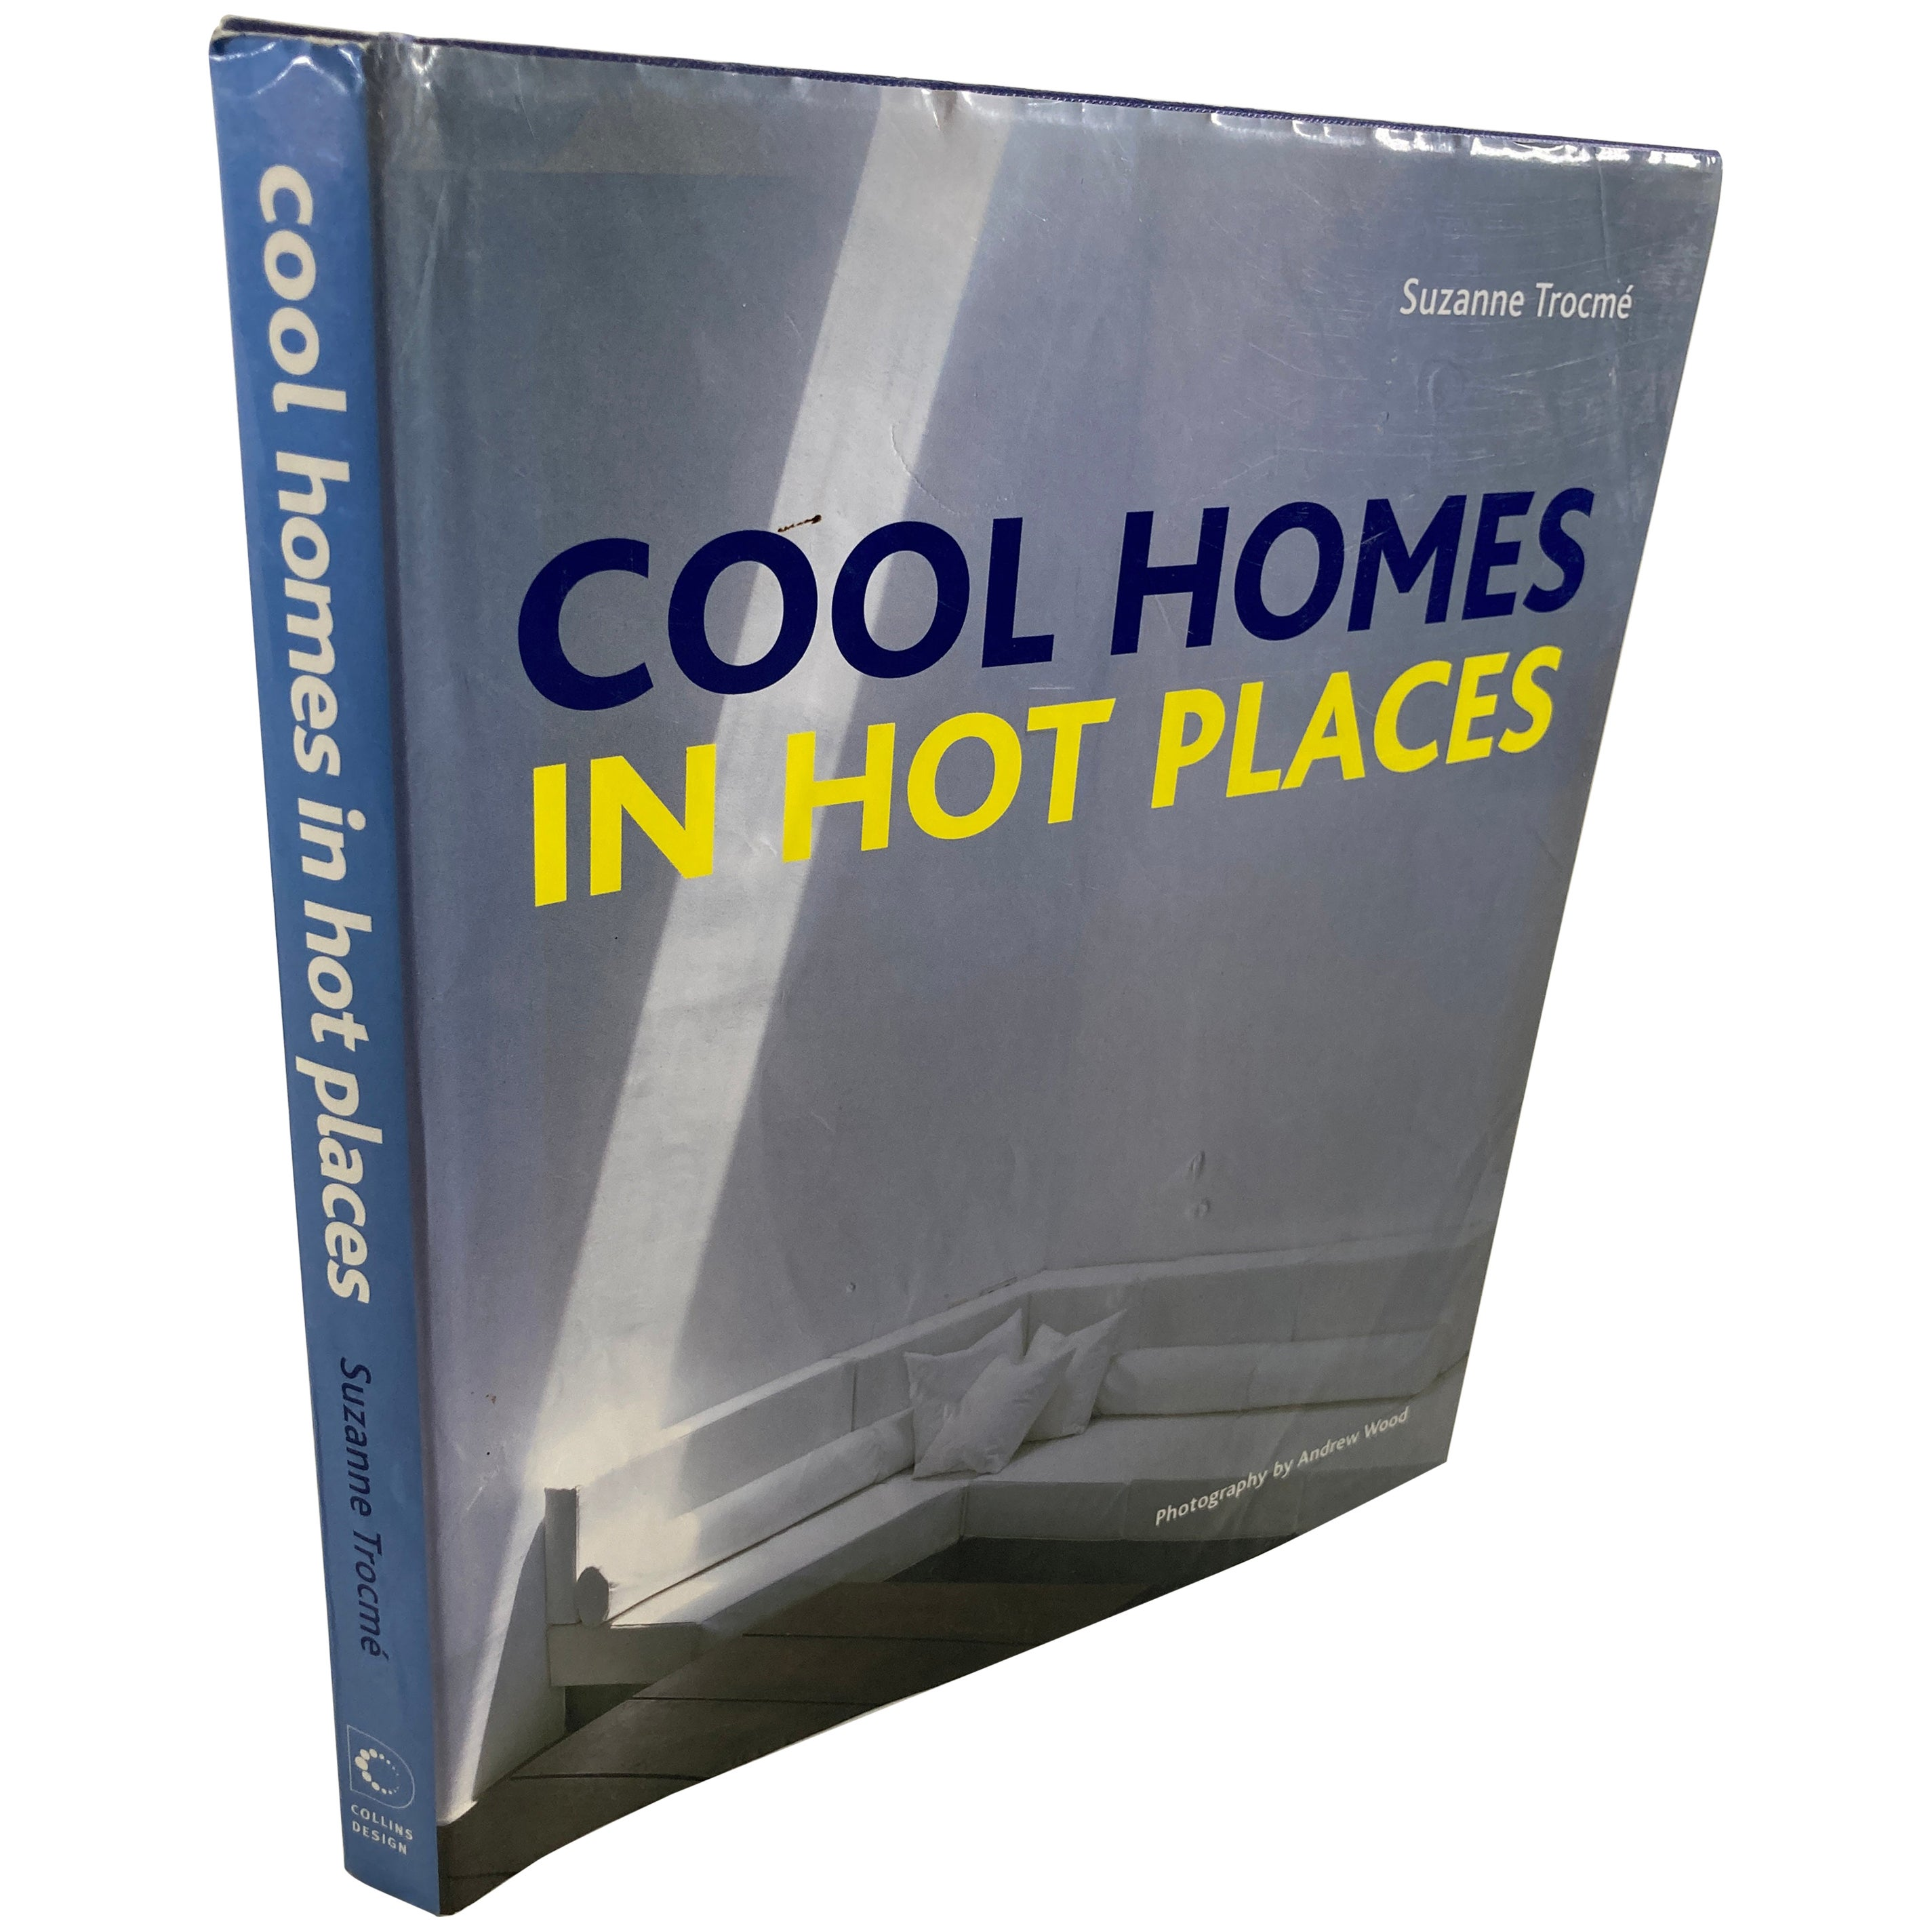 Hardcover Coffee Table Book